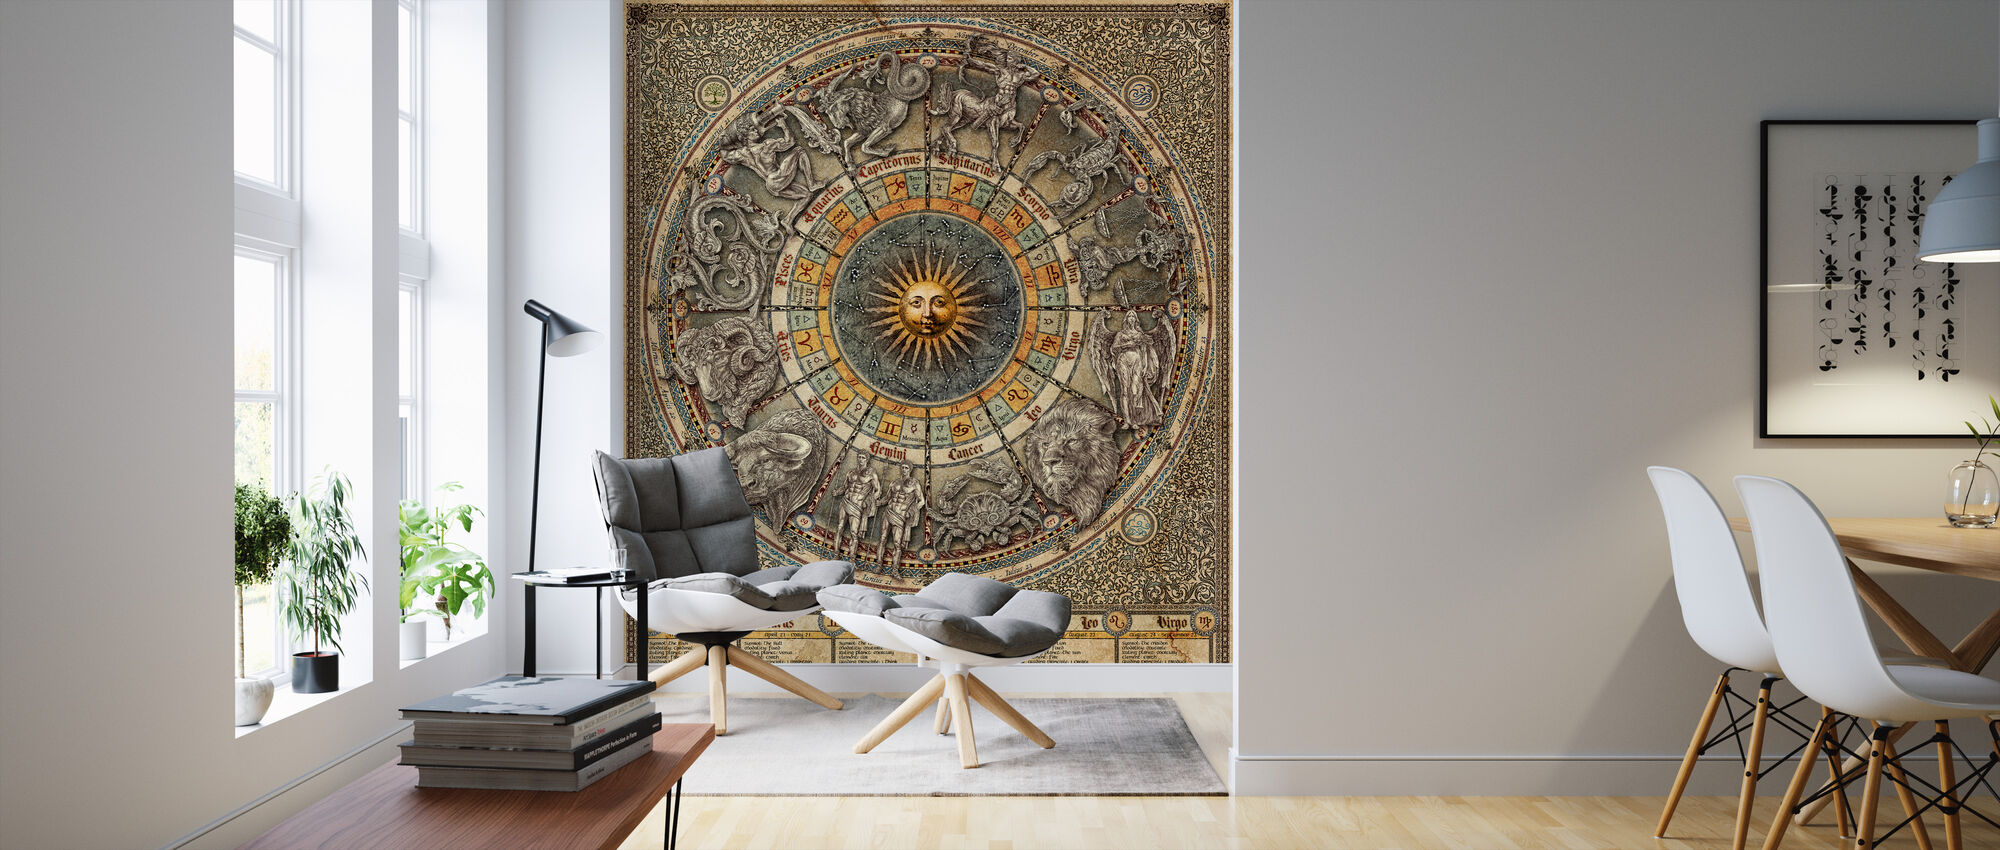 Zodiac - Text - Behang - Woonkamer